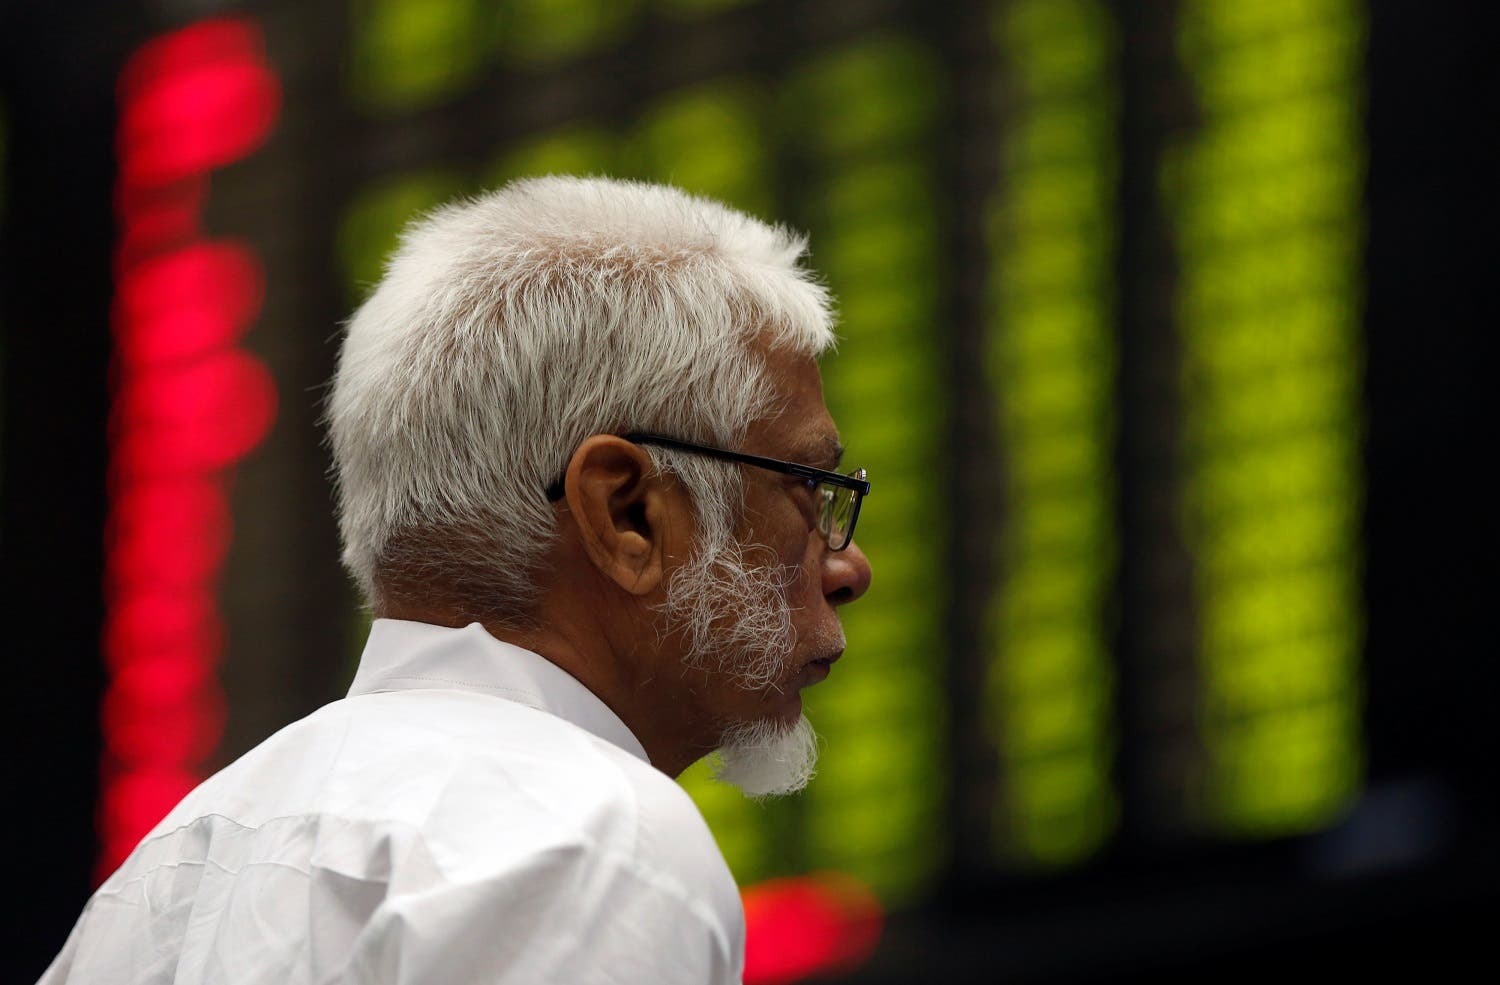 A man monitors an electronic board displaying share market prices during a trading session in the halls of Pakistan Stock Exchange (PSX) in Karachi, Pakistan, on June 12, 2017. (Reuters)